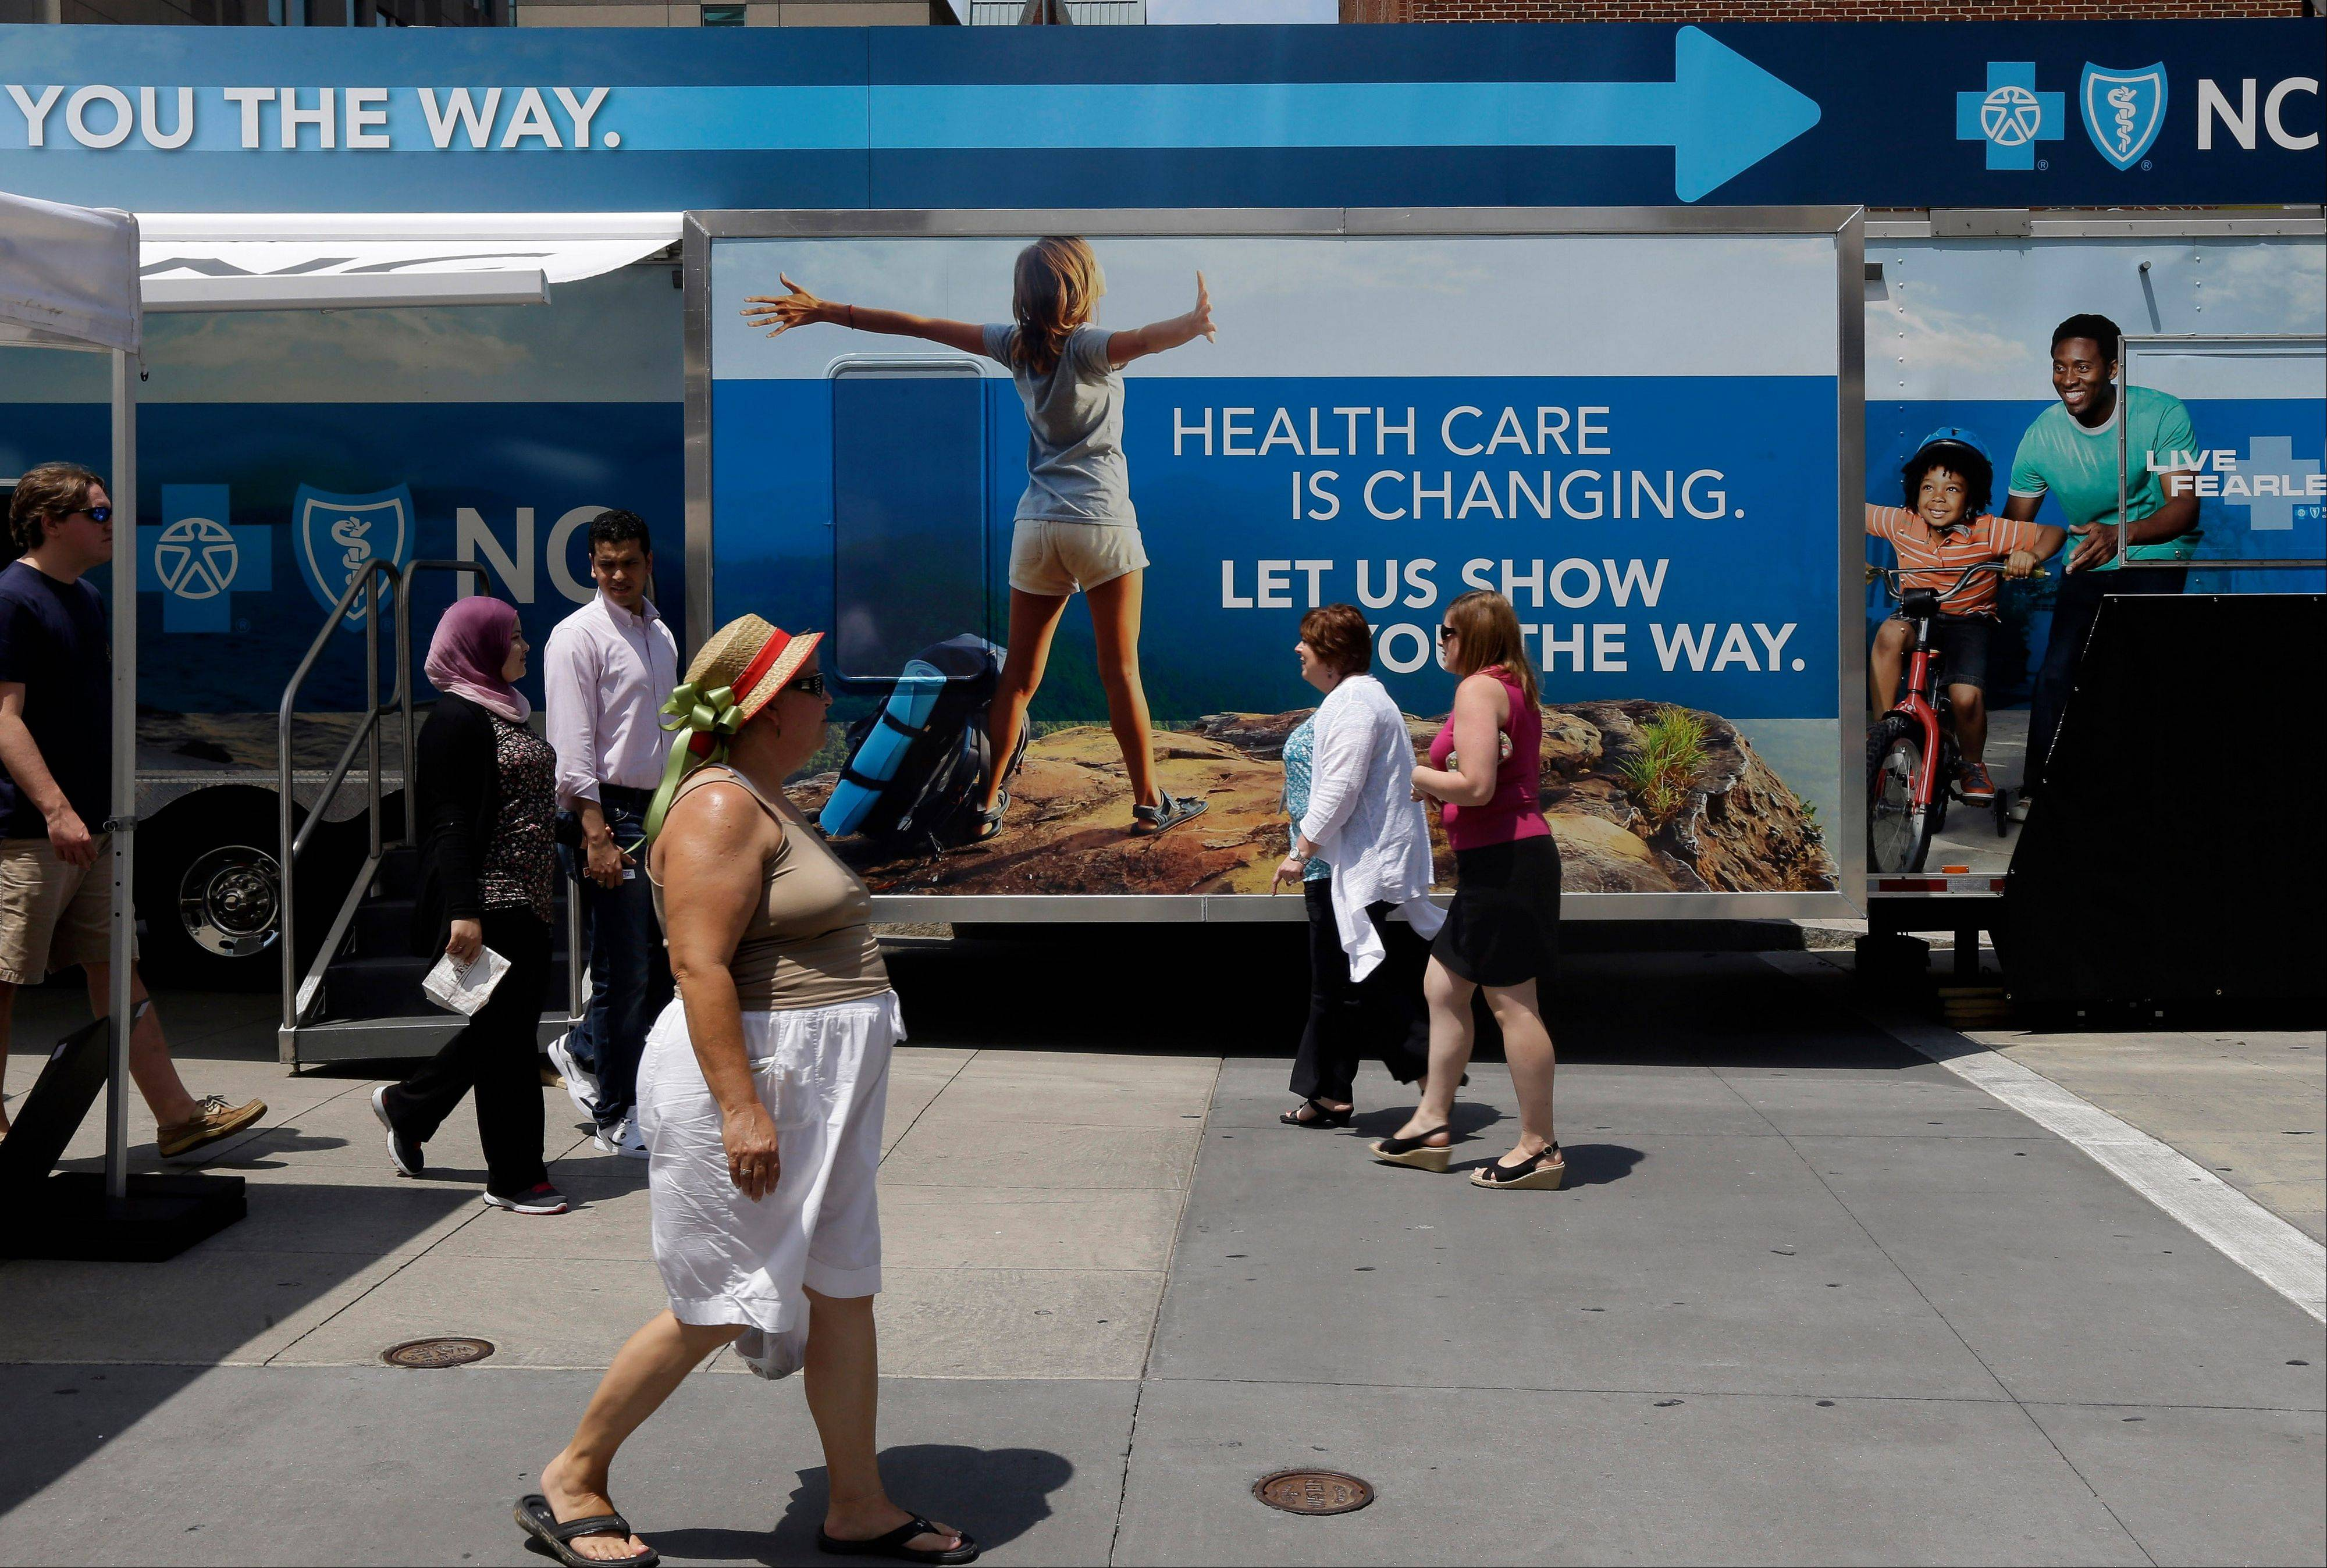 Pedestrians pass by a Blue Cross Blue Shield of North Carolina trailer at the downtown farmer's market in Raleigh, N.C.